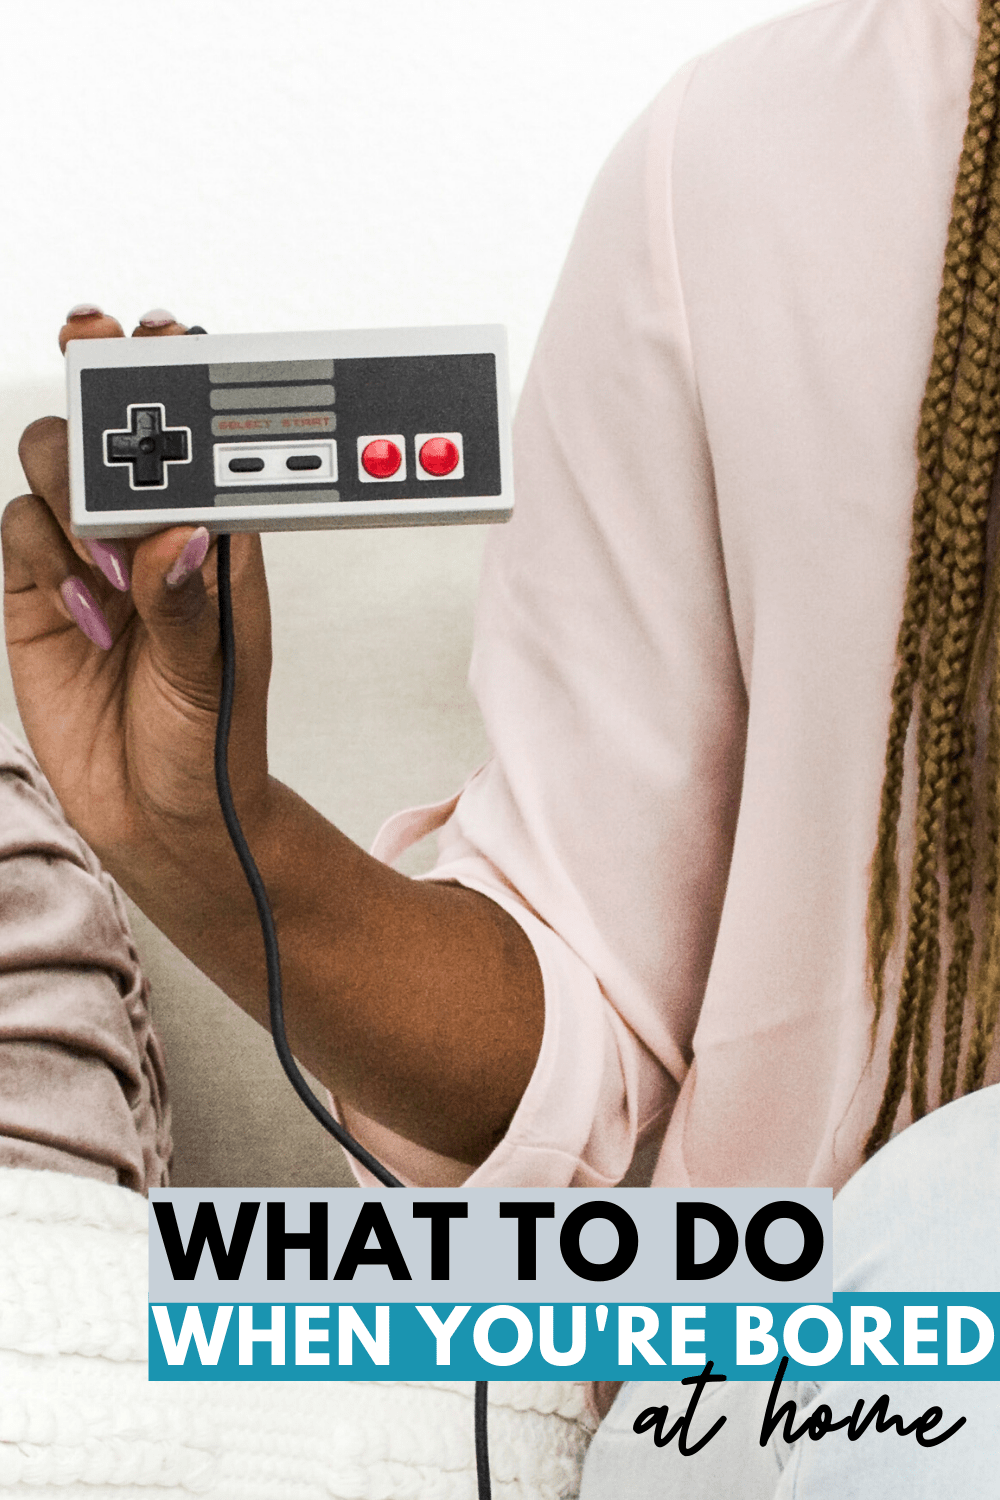 What to Do at Home When You're Bored